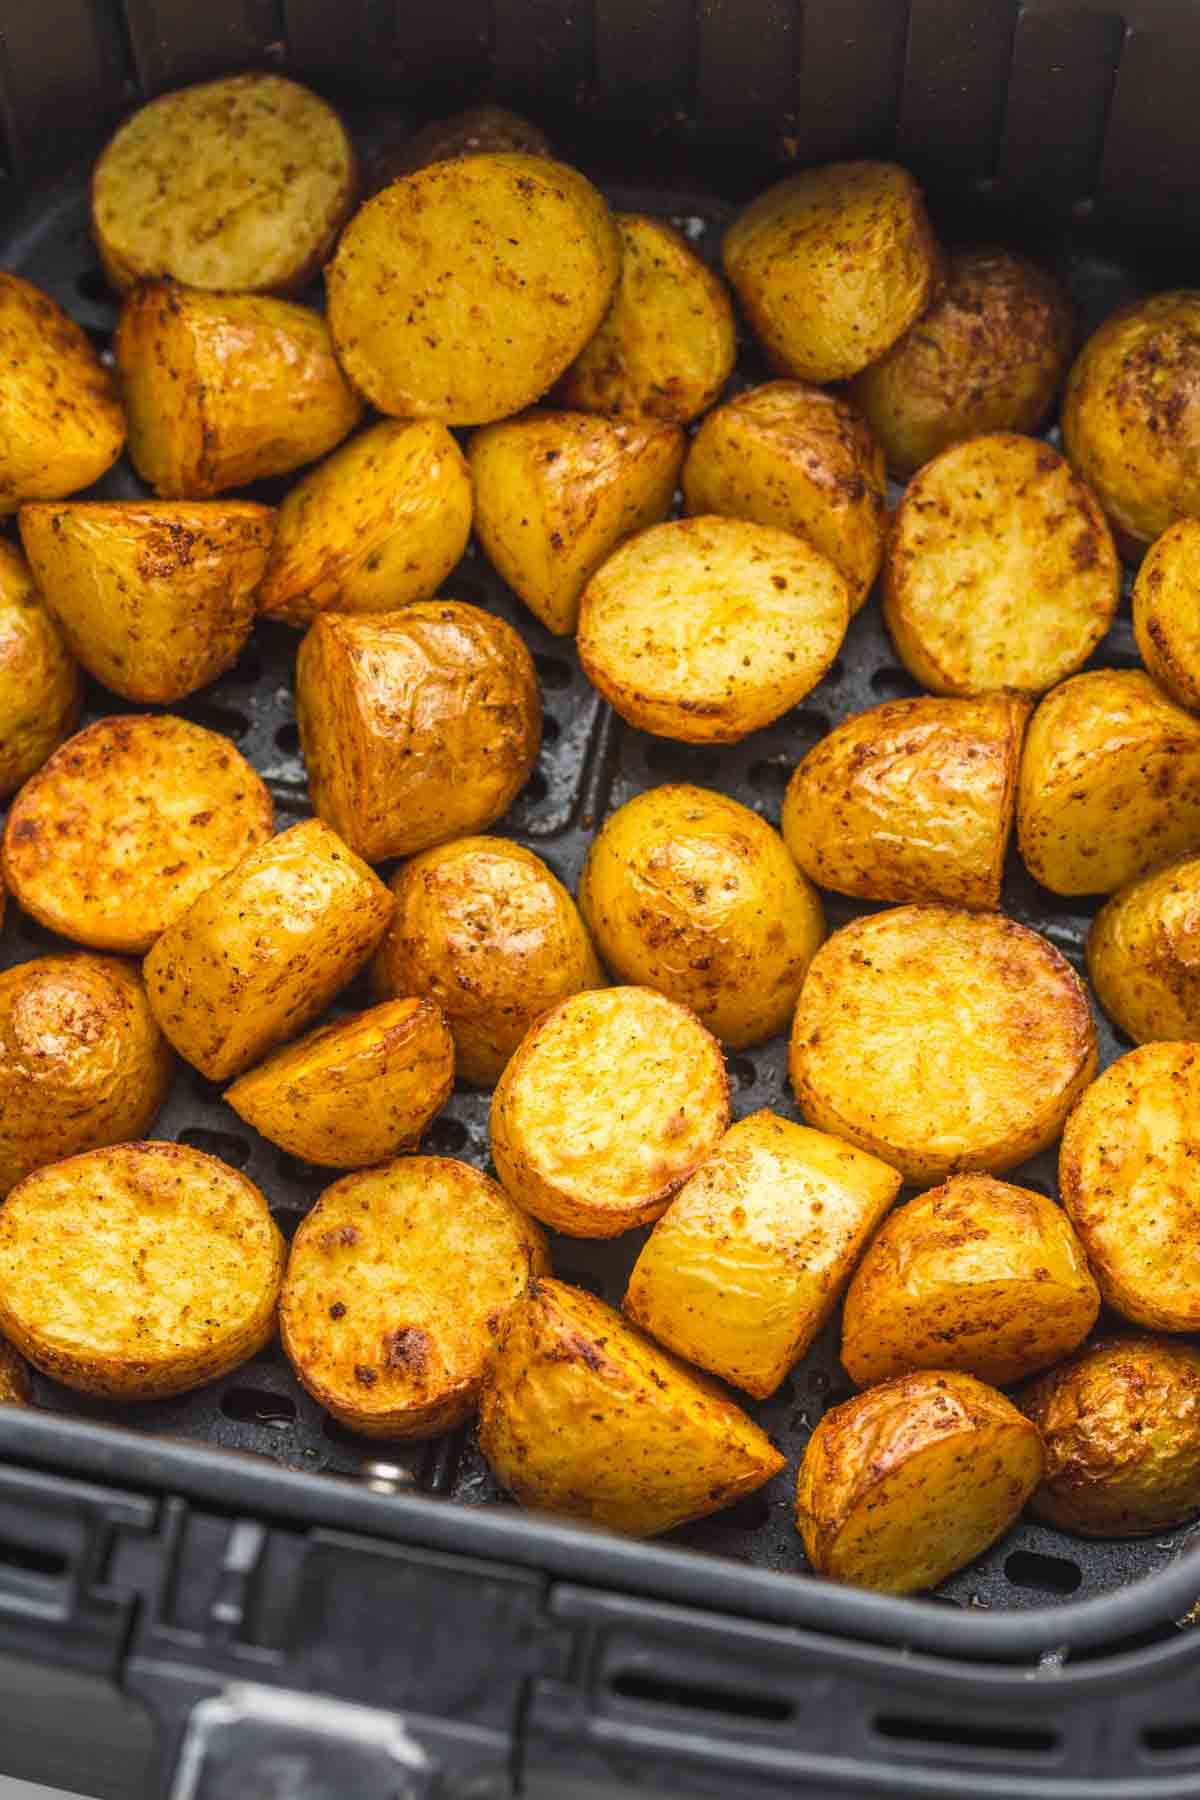 A close up of roasted potatoes in the air fryer basket